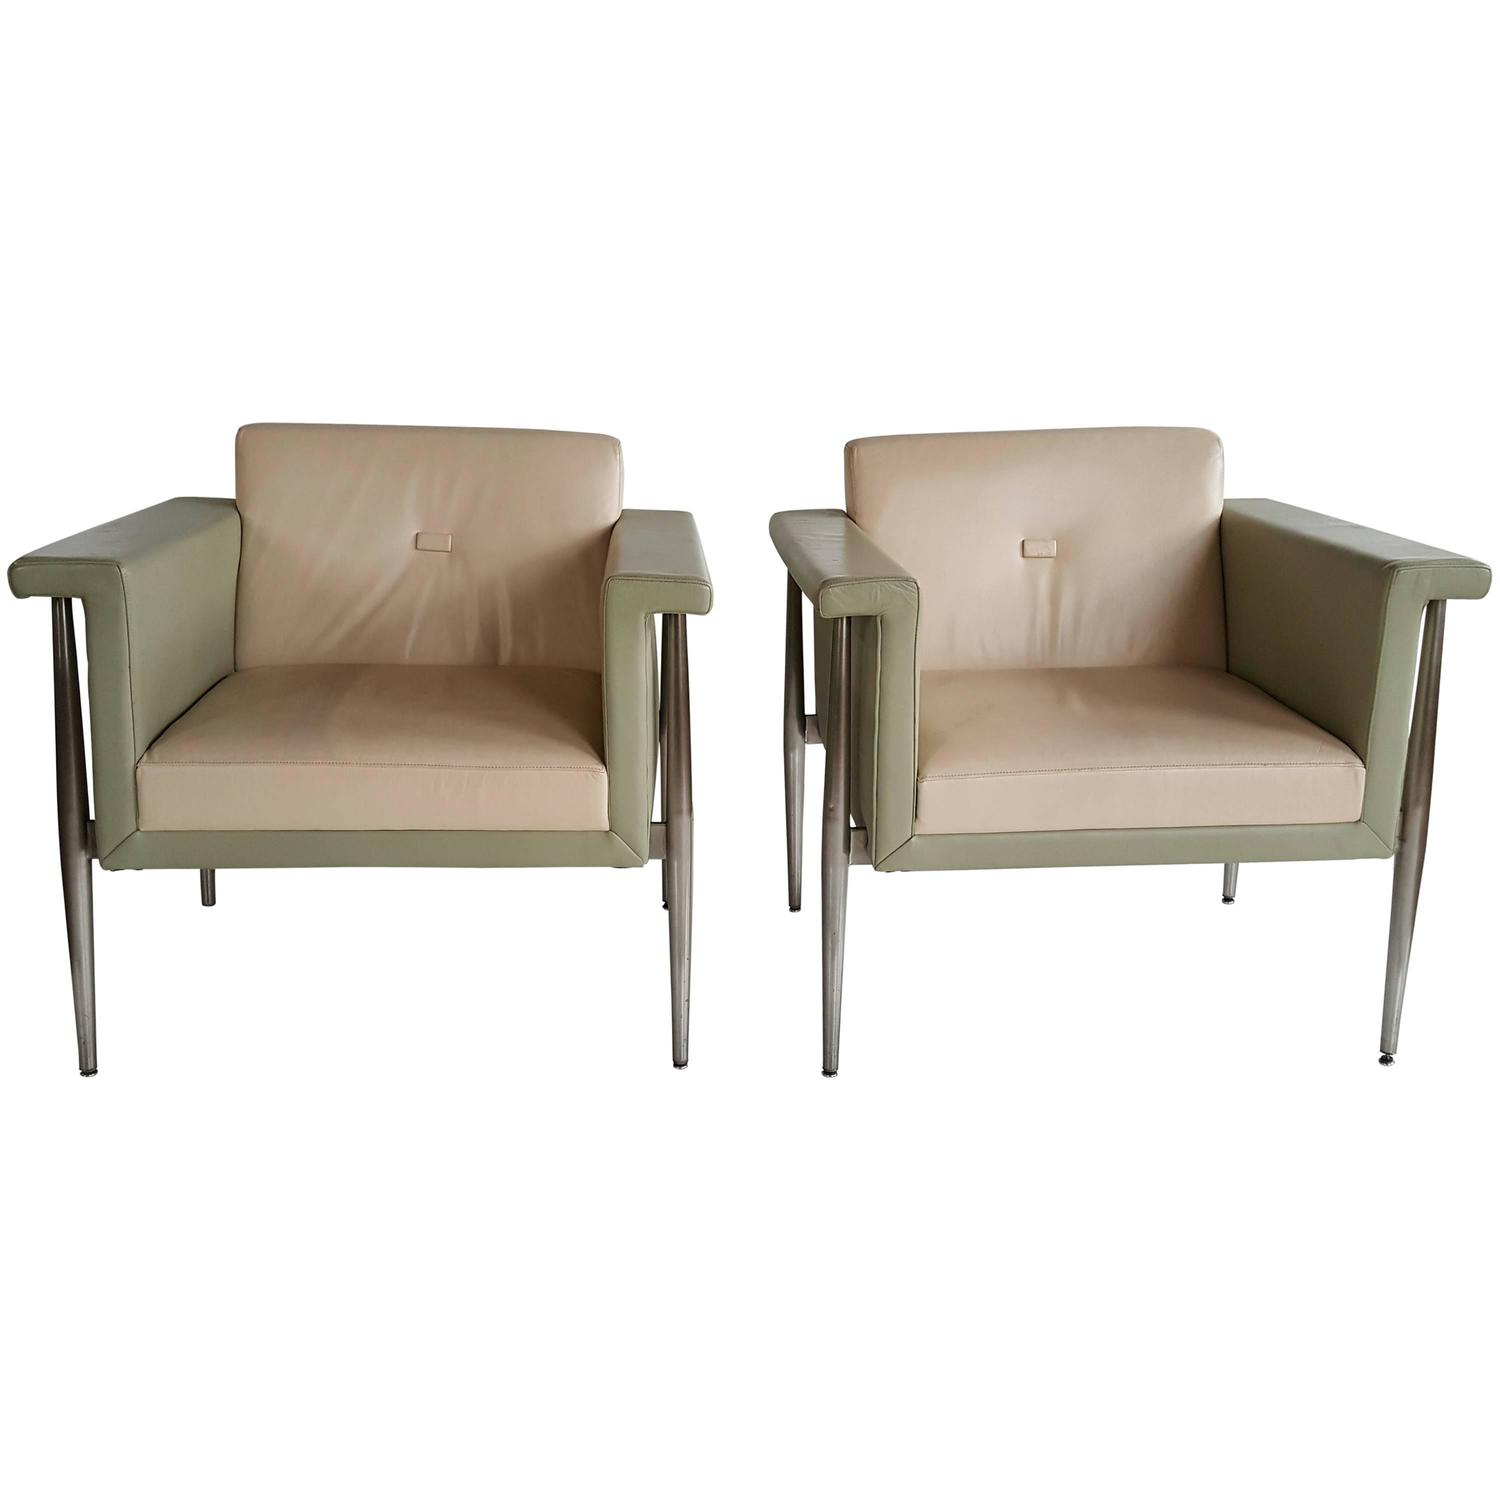 Memphis style two tone leather and aluminum lounge chairs for Bernhardt furniture for sale